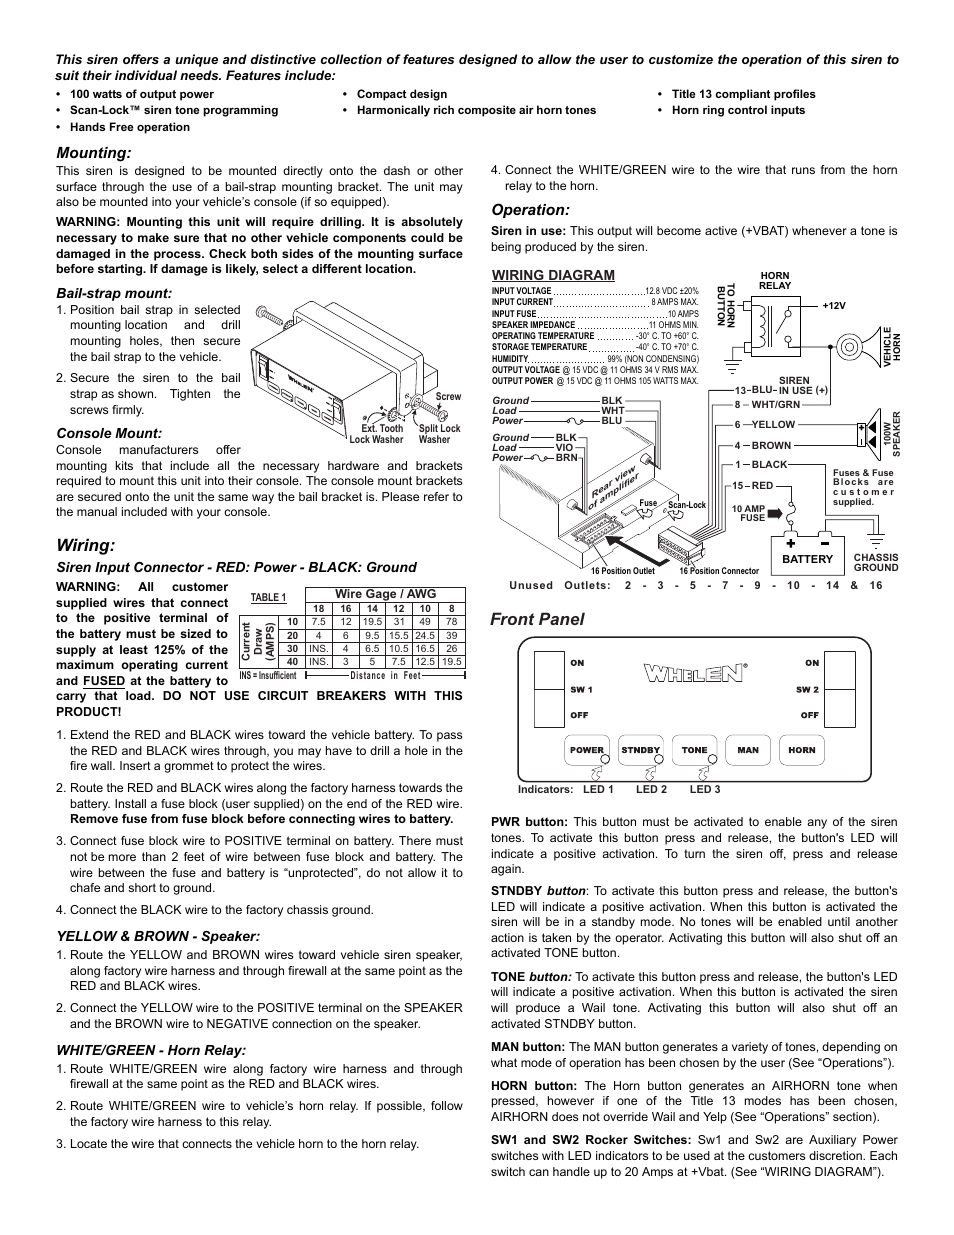 Whelen Gamma 2 Wiring Diagram Trusted Schematics 295sl100 Front Panel Mounting Gamma2 User Manual Page 3 Edge 9000 Installation